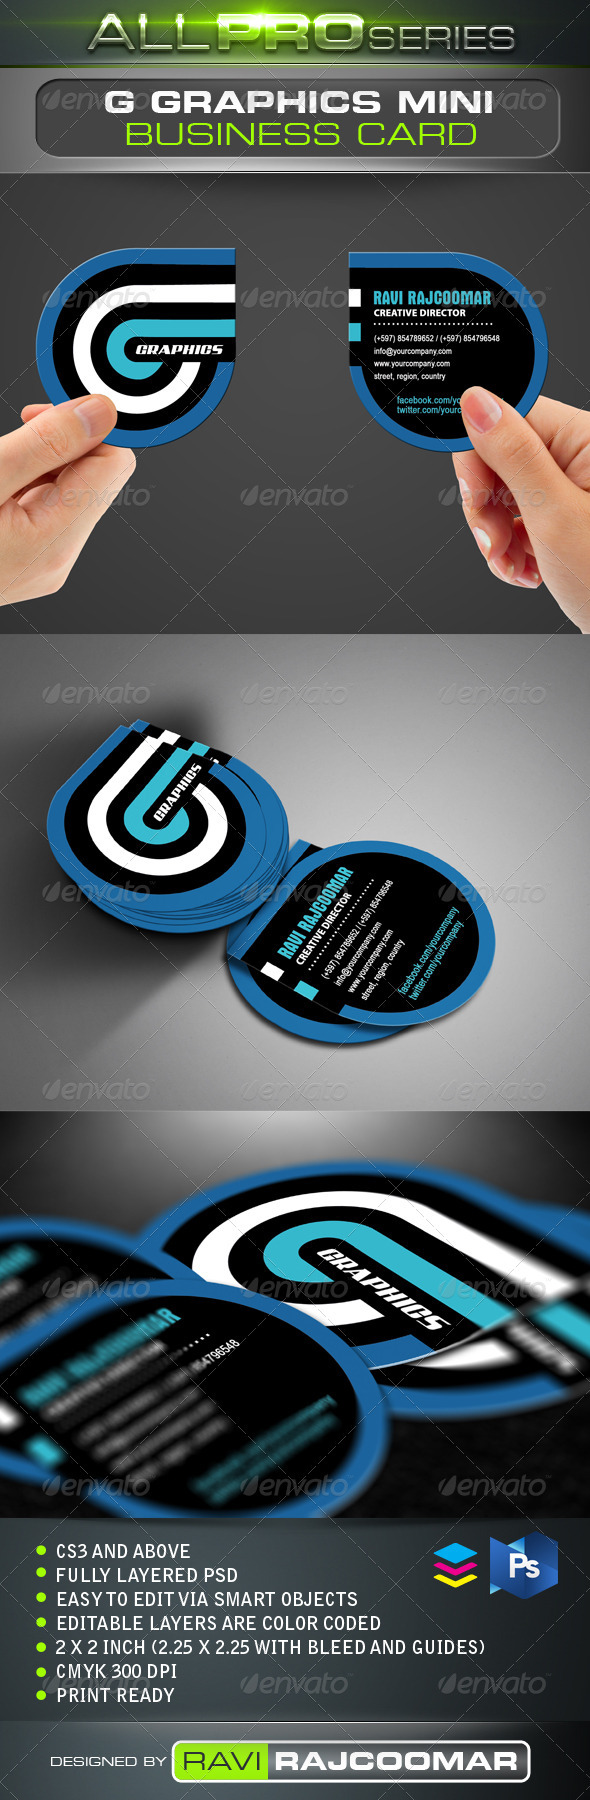 G Graphics Mini Business Card - Creative Business Cards